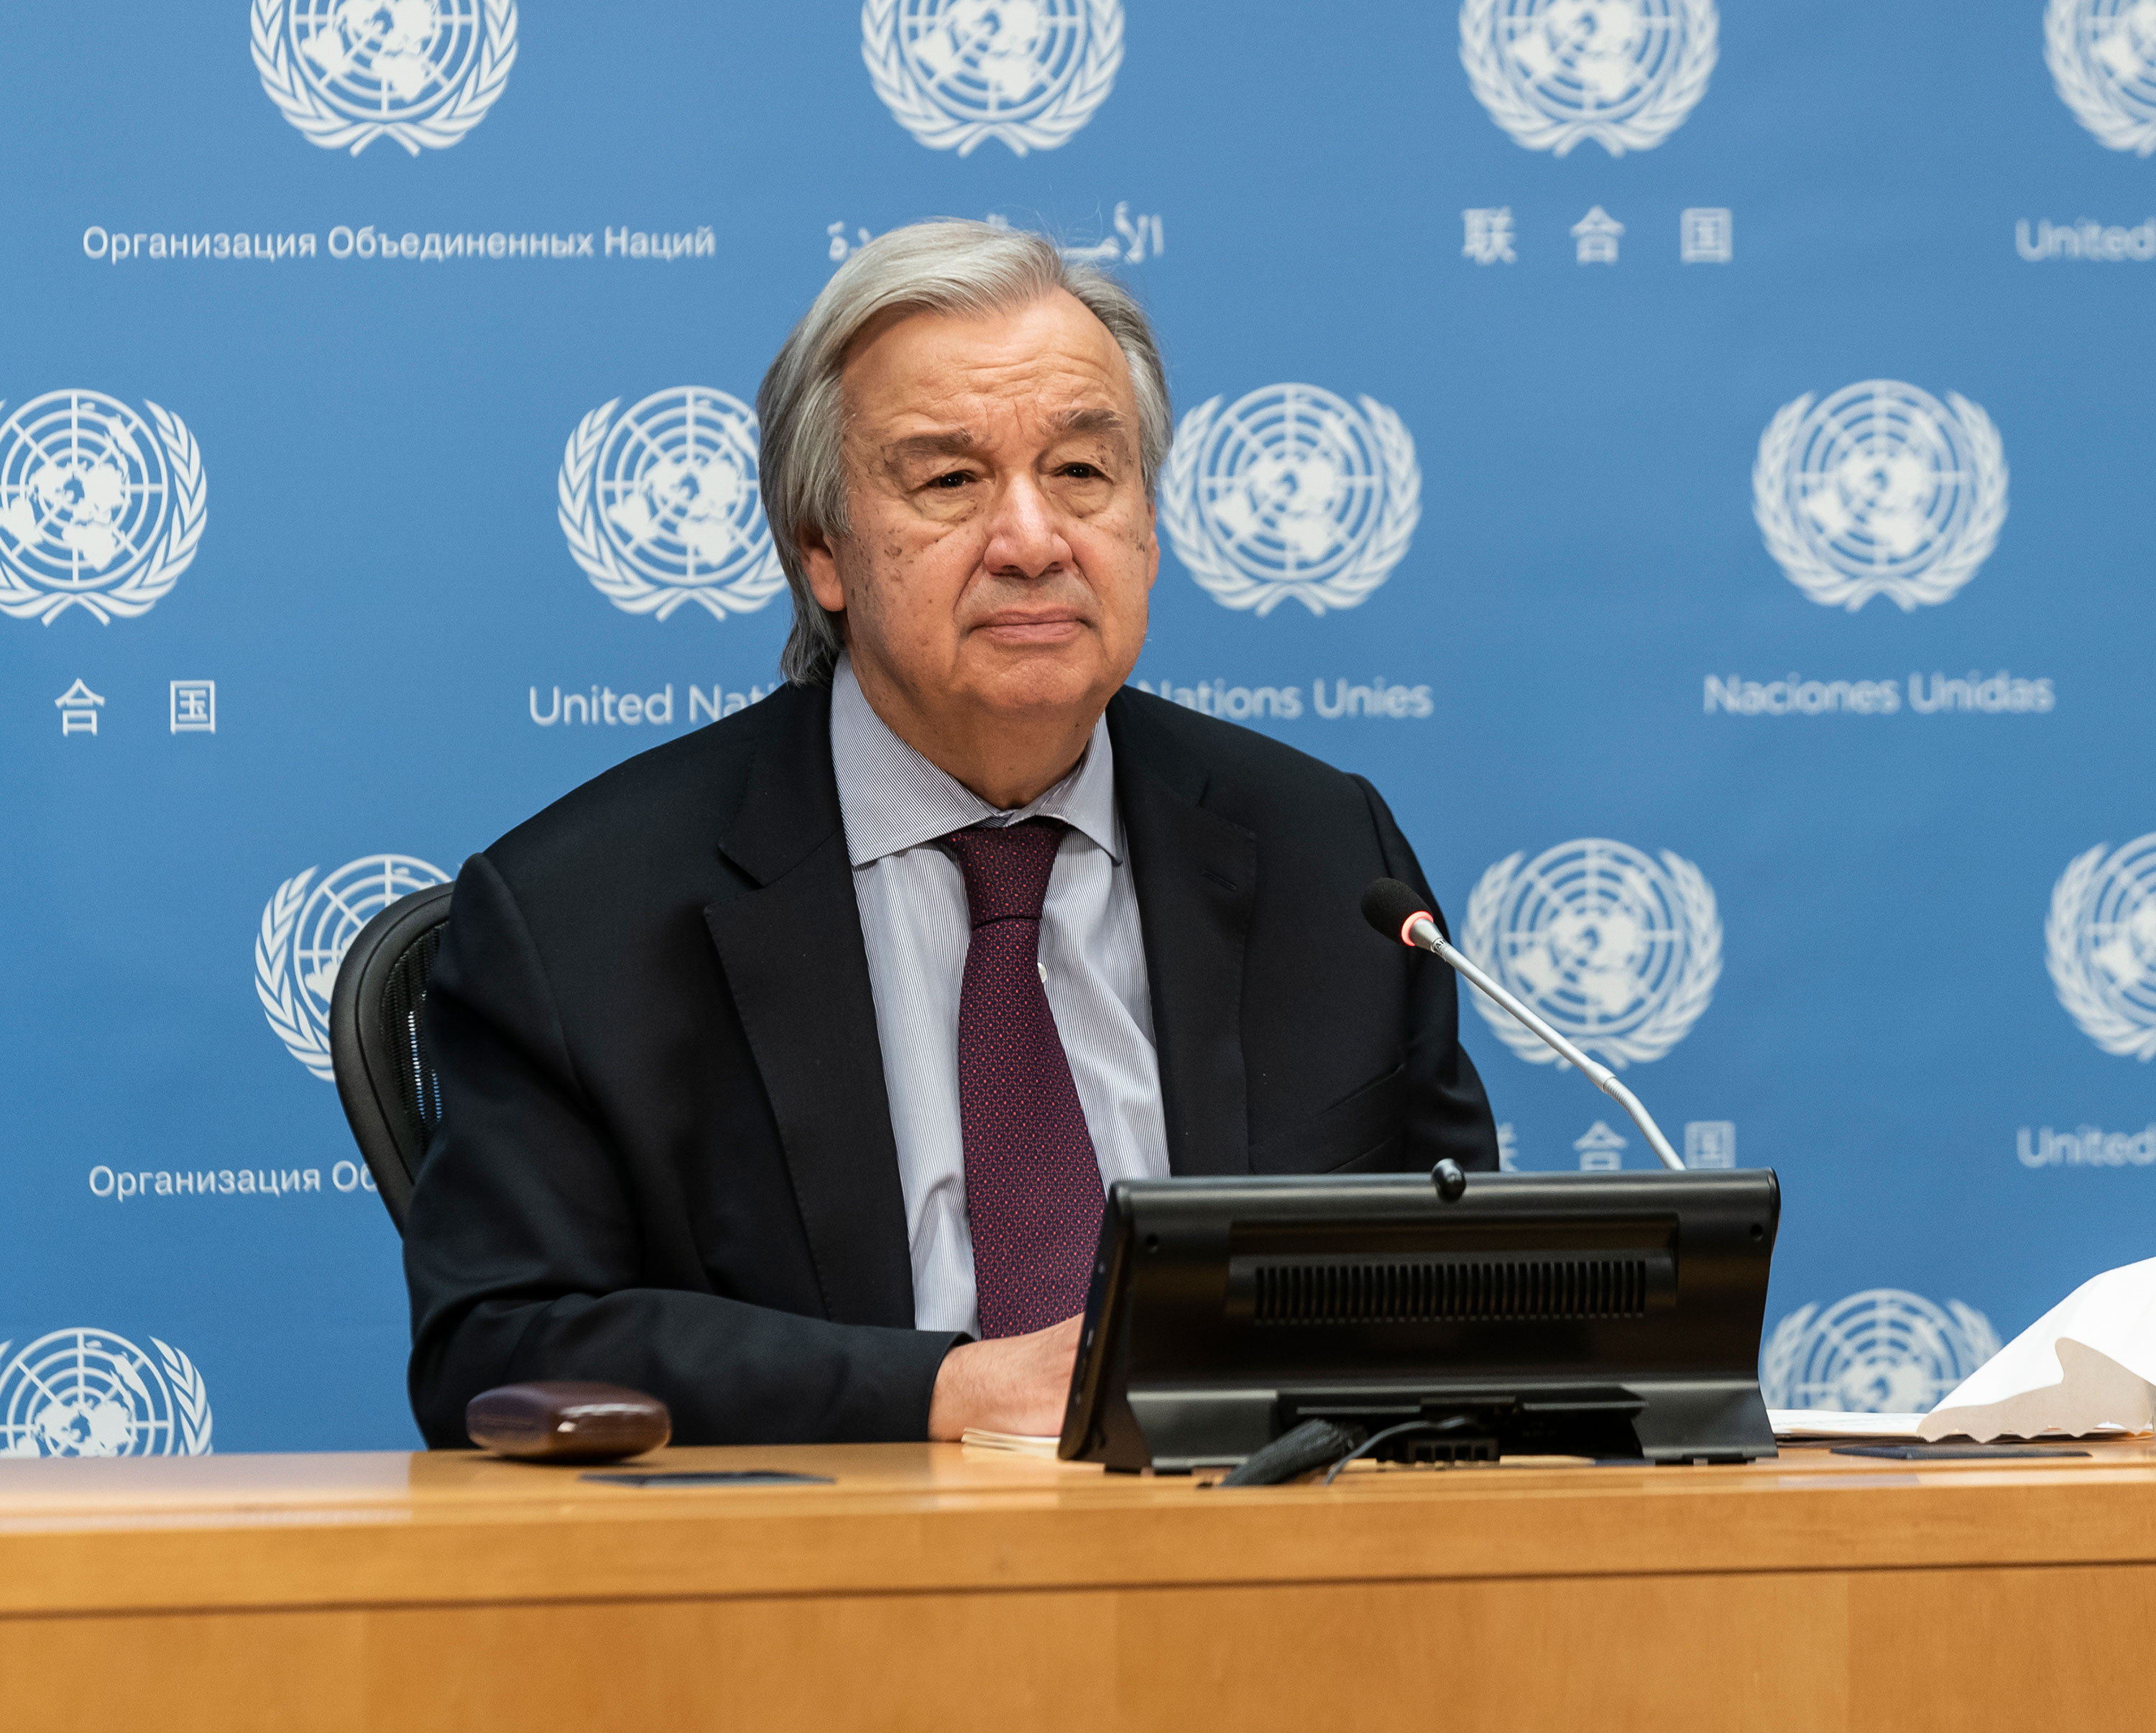 Humanity is waging a 'suicidal' war on nature, UN chief warns